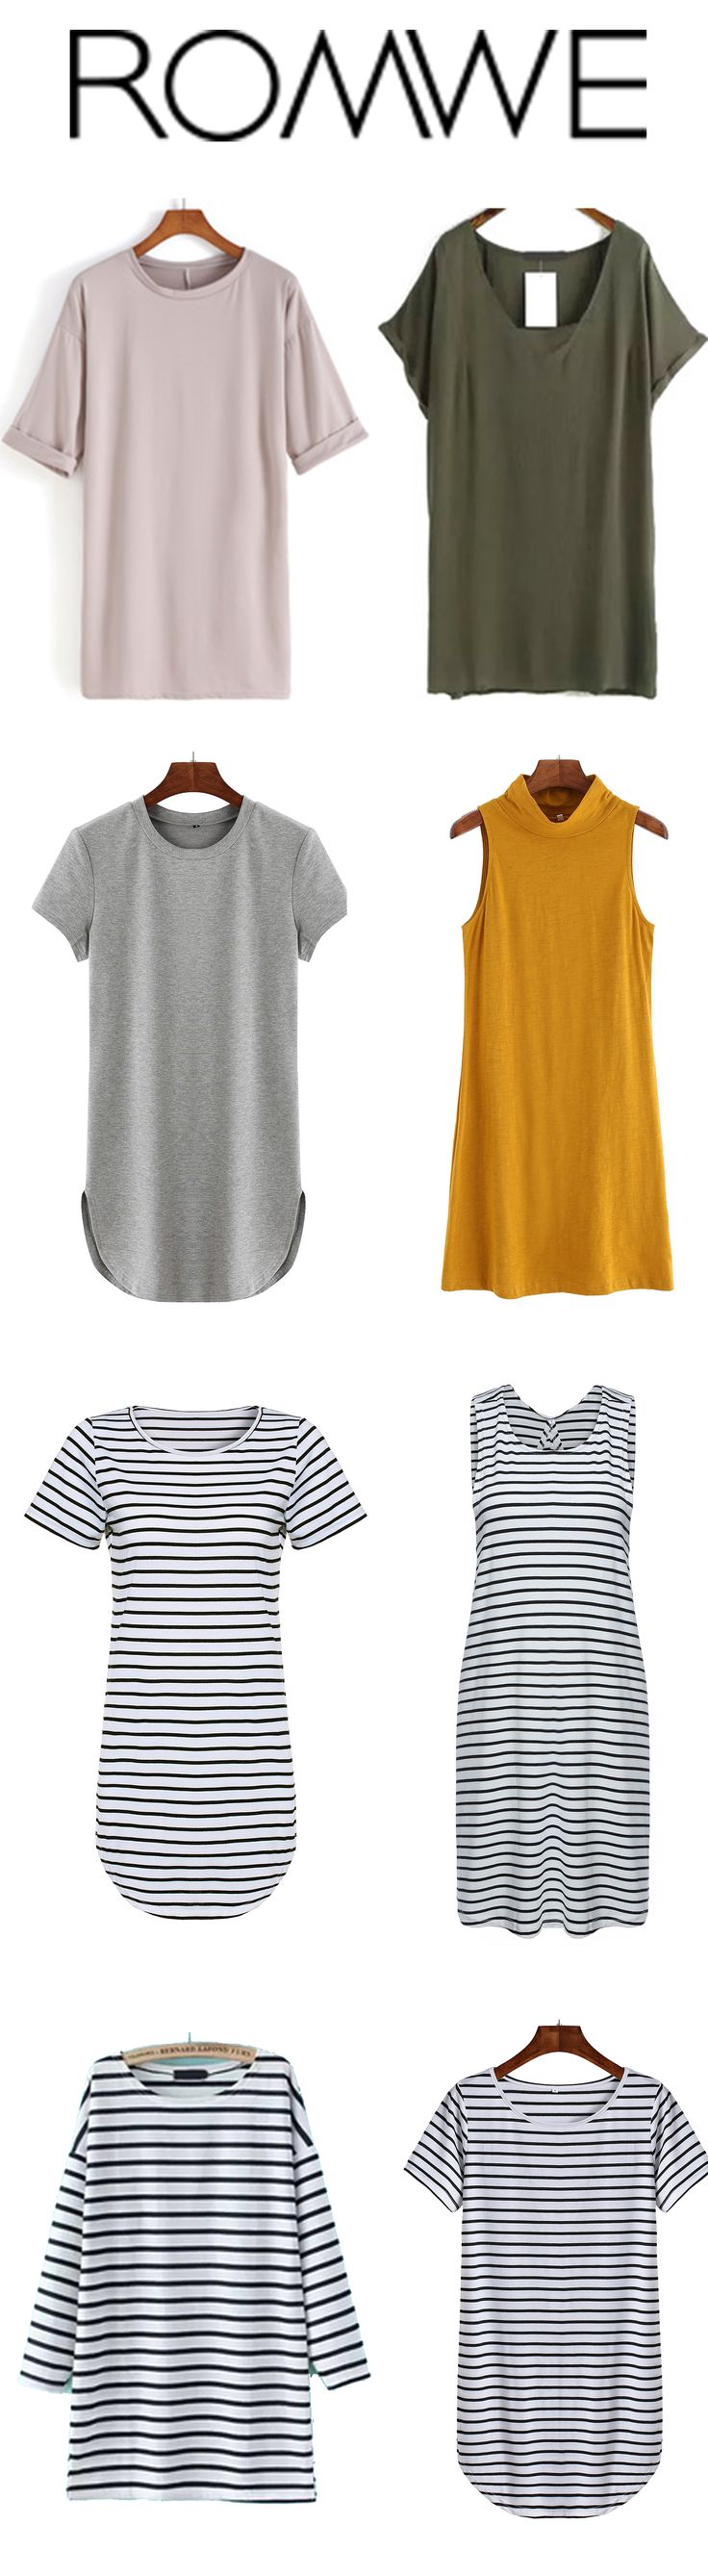 Longing for a lot of soft T-dress for so long. Plain shift dress and stripe casual dress are must for my style. Romwe do it well. Don't follow, just be simple!